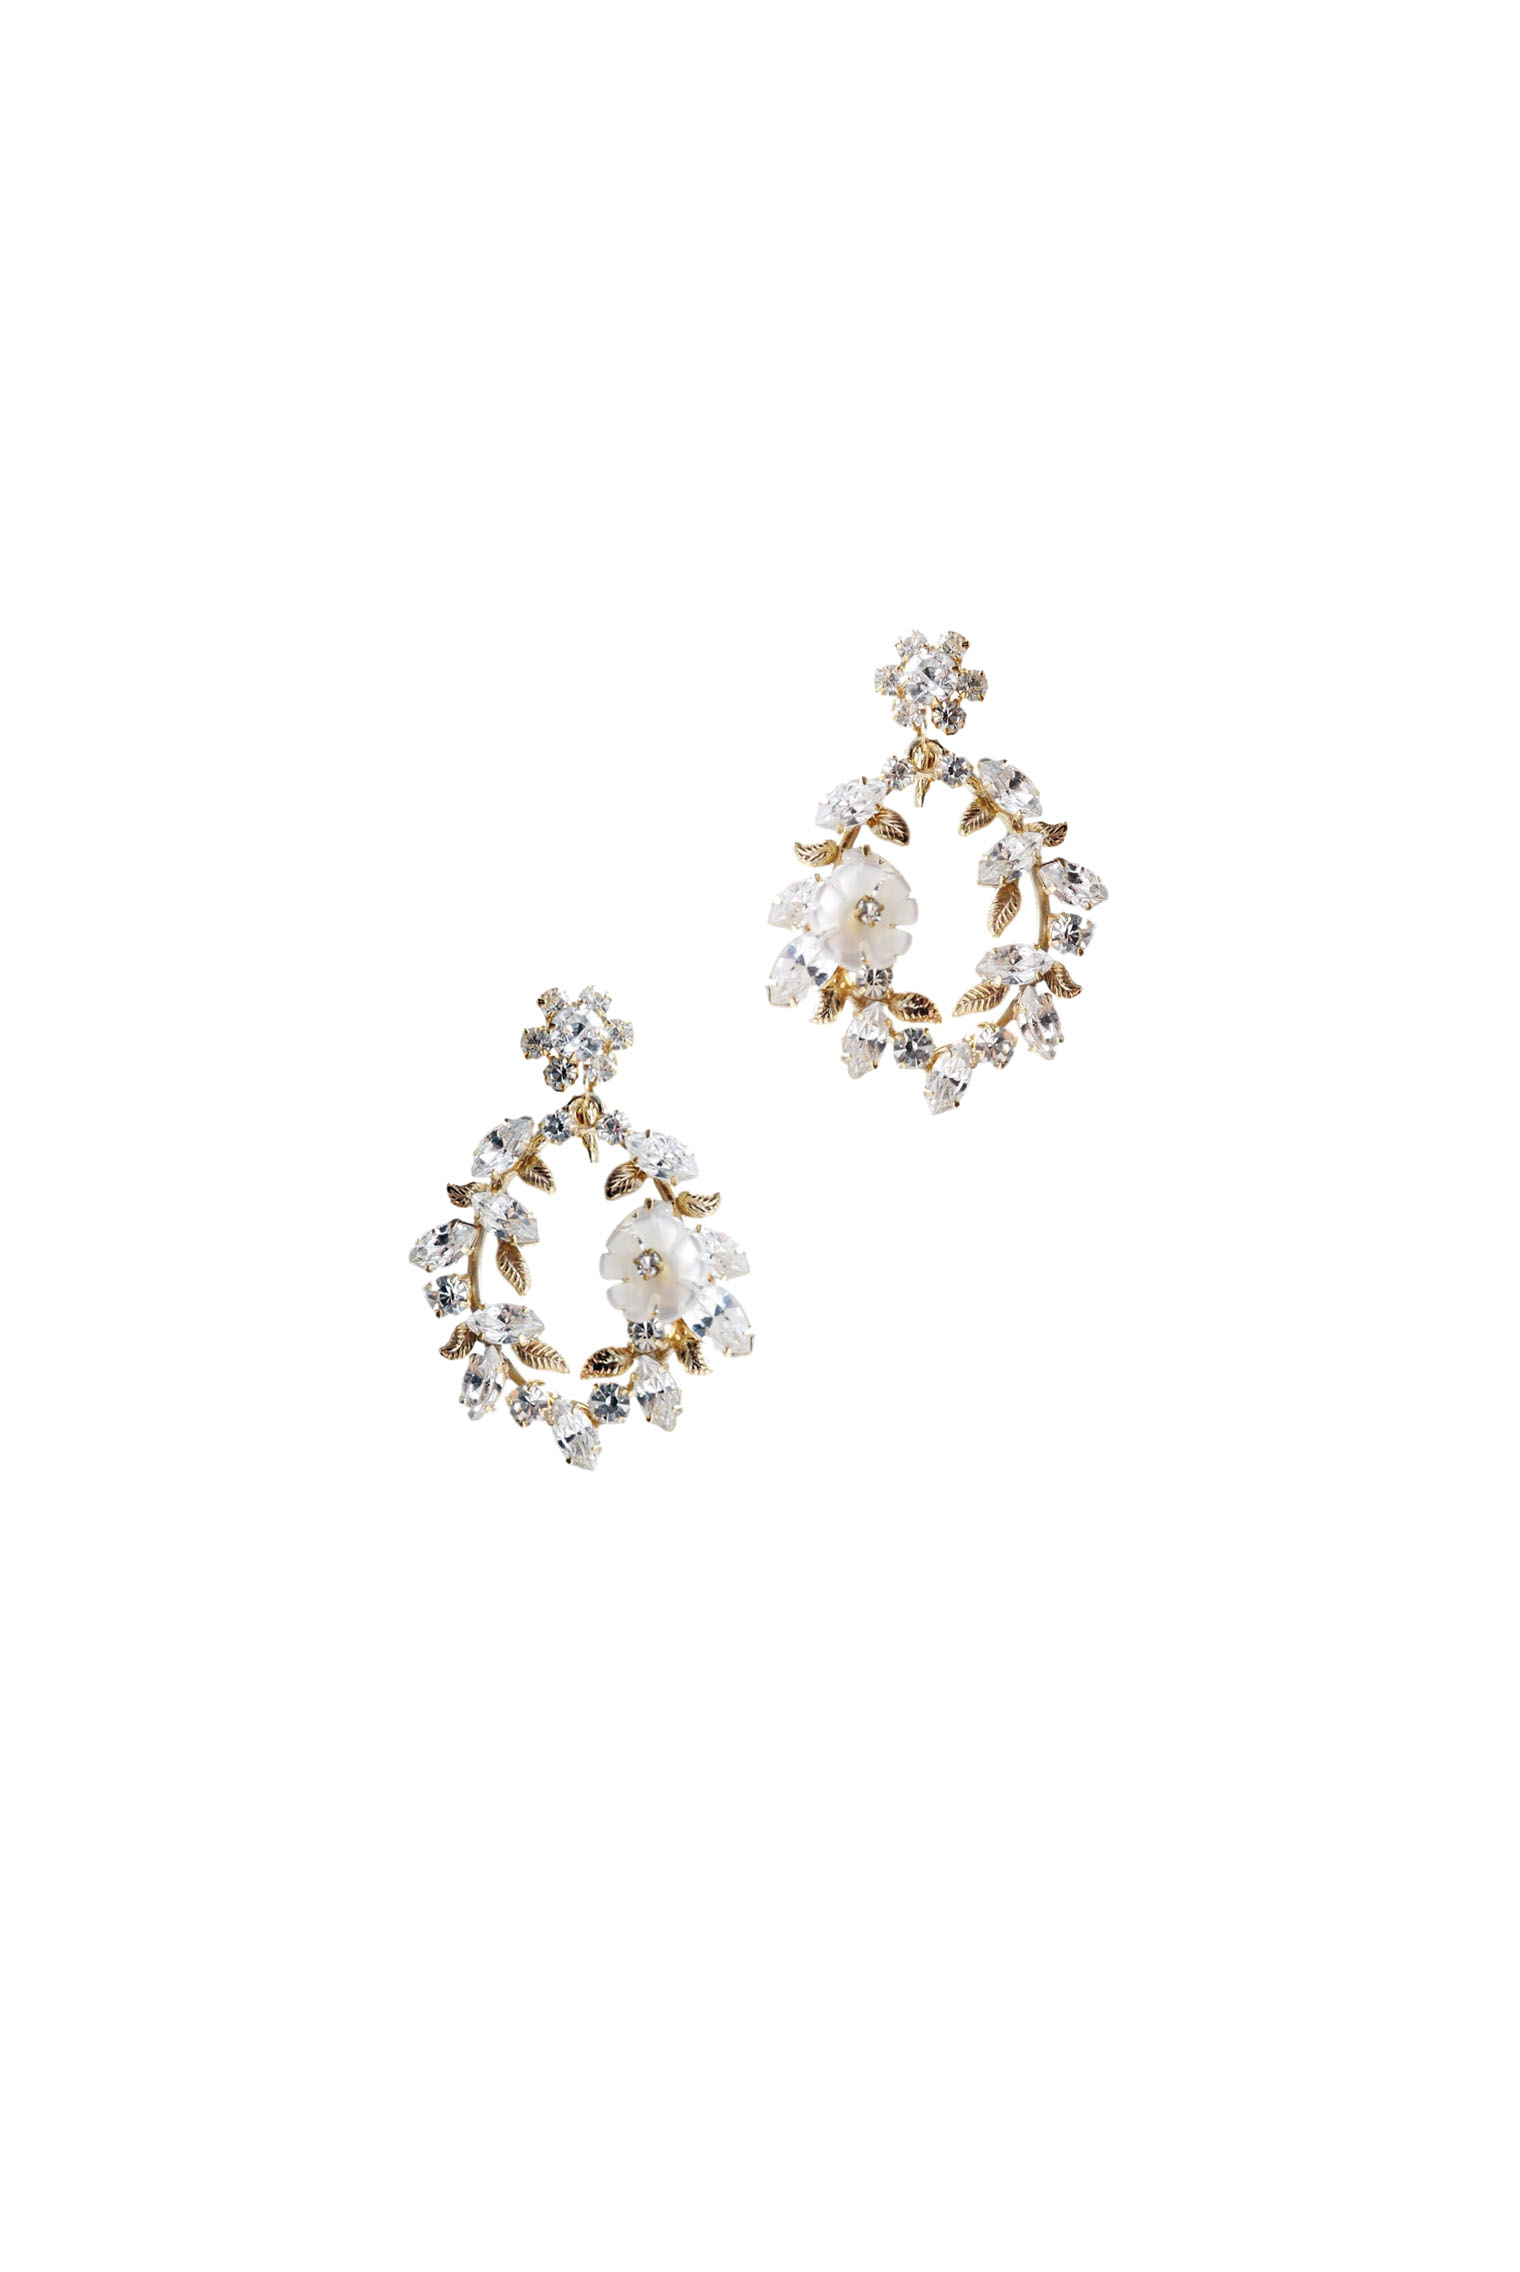 [RENTAL][Corona Earrings]by Ti Adoro Jewelry